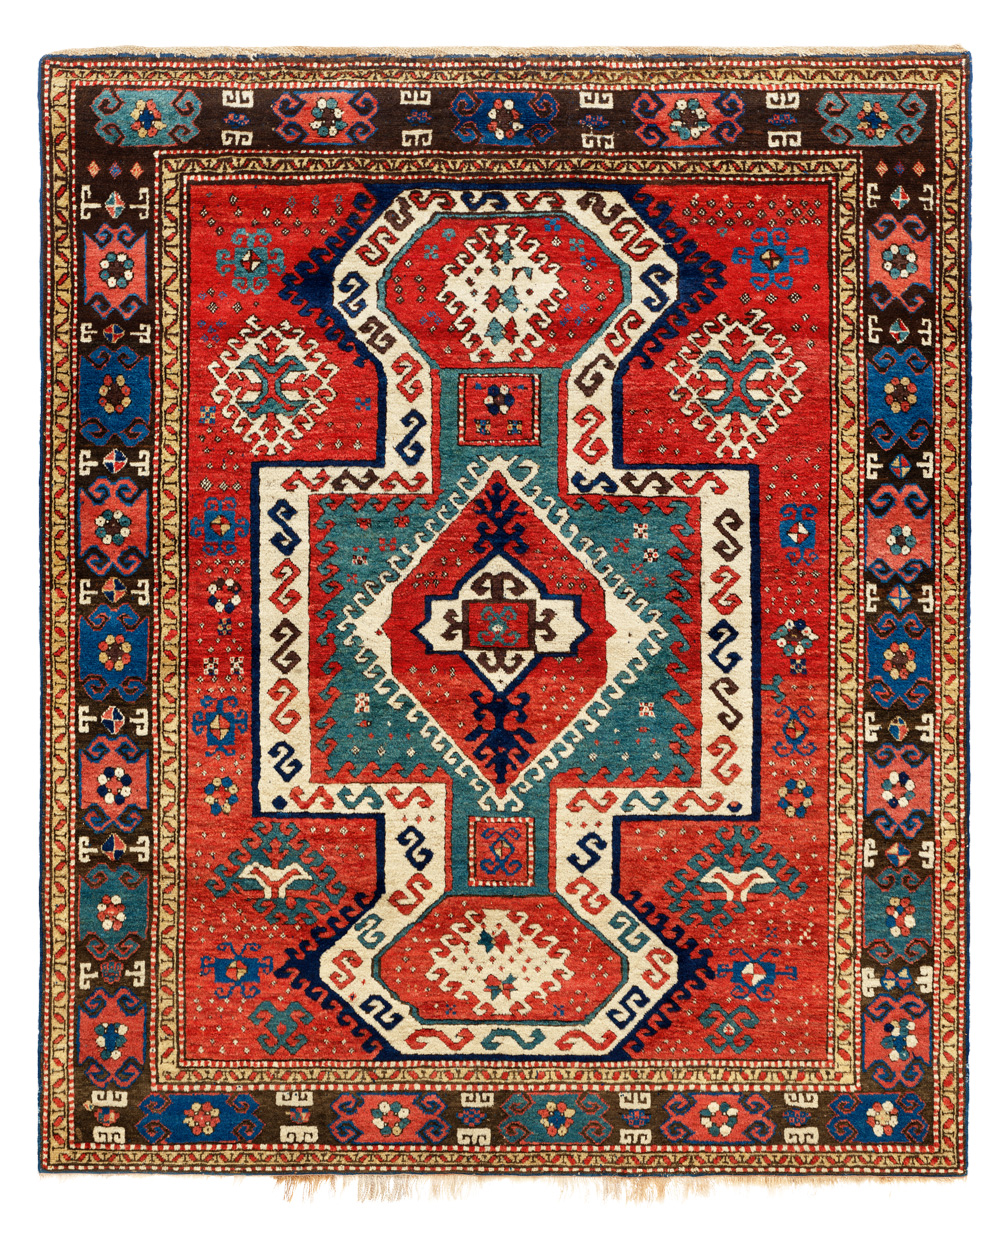 "5  'Sevan' Kazak rug, western Transcaucasus, mid 19th century. Warp: Z2S beige and brown interplied wool, warps on one level; weft: two singles, medium blue wool, two to four shoots, mostly two; knots: symmetric, V8 x H8, = 64/in2 (ca. 992/ dm2; pile height about 12 mm; sides: two pairs of reinforced warps interlaced with medium blue wool, small amounts of ivory wool, where the blue dye did not take; ends: top – 1.5 cm medium blue wool plainweave, following a two-pick obliquely interlaced band. bottom—slightly reduced, 1 cm medium blue wool plainweave terminating in original warp loops, some abraded away; colours: 9: red, ivory, dark brown, green, medium blue, dark blue, salmon, yellow, aubergine; 1.68 x 1.98 m (5' 6"" x 6' 6""). Author's collection, published Qarajeh to Quba, 2019, pl.30"